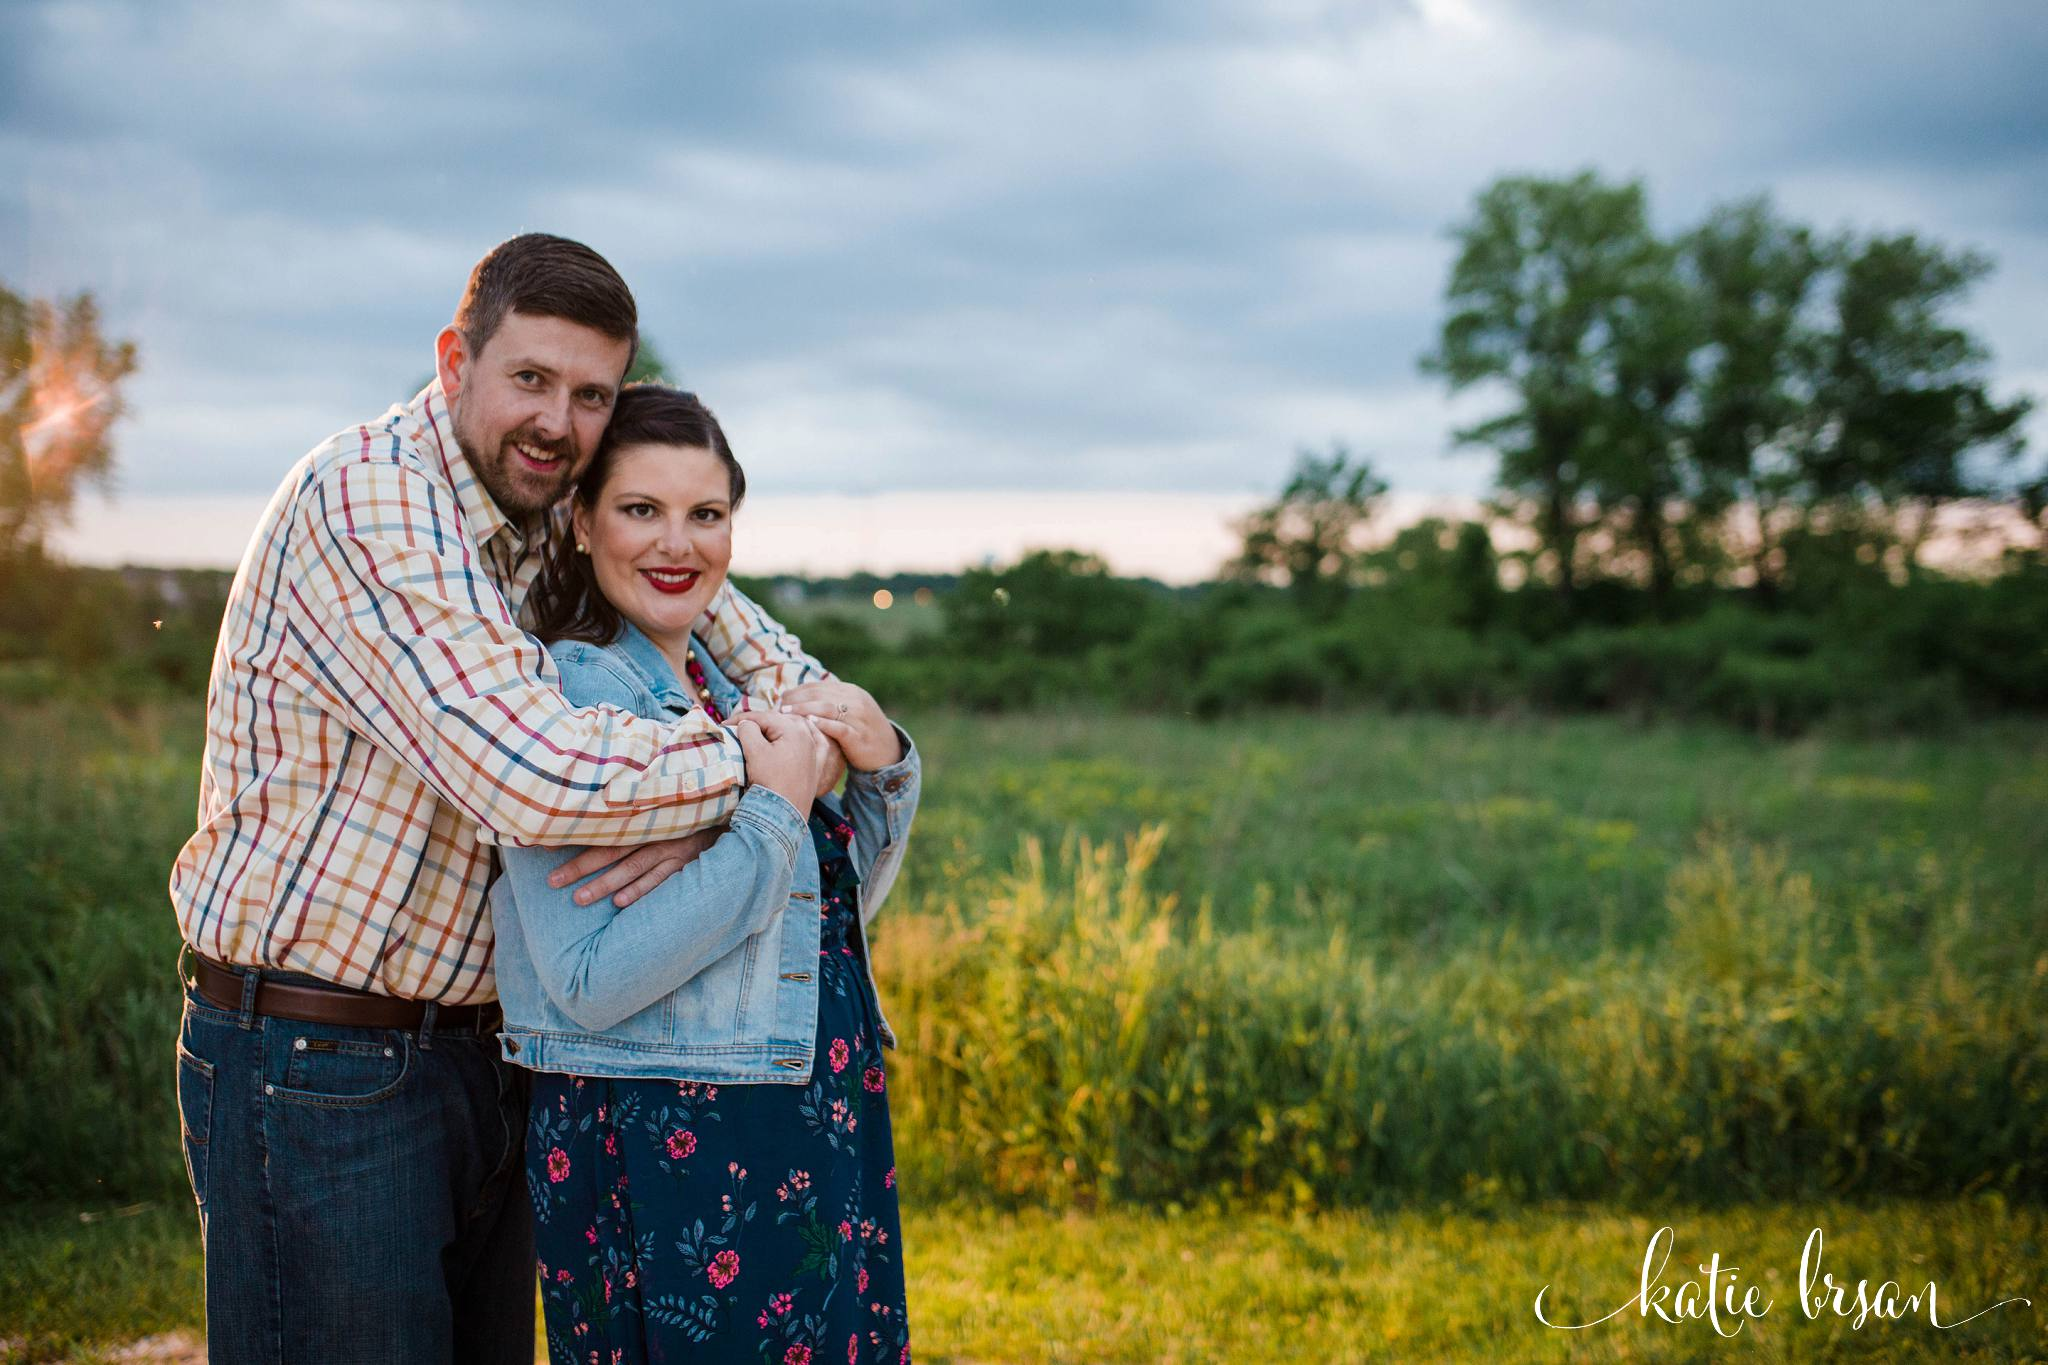 KatieBrsan-HomerGlen-NewLenox-EngagementSession-HadleyValley-TeacherEngagementSession-ChicagoWeddingPhotographer_0596.jpg